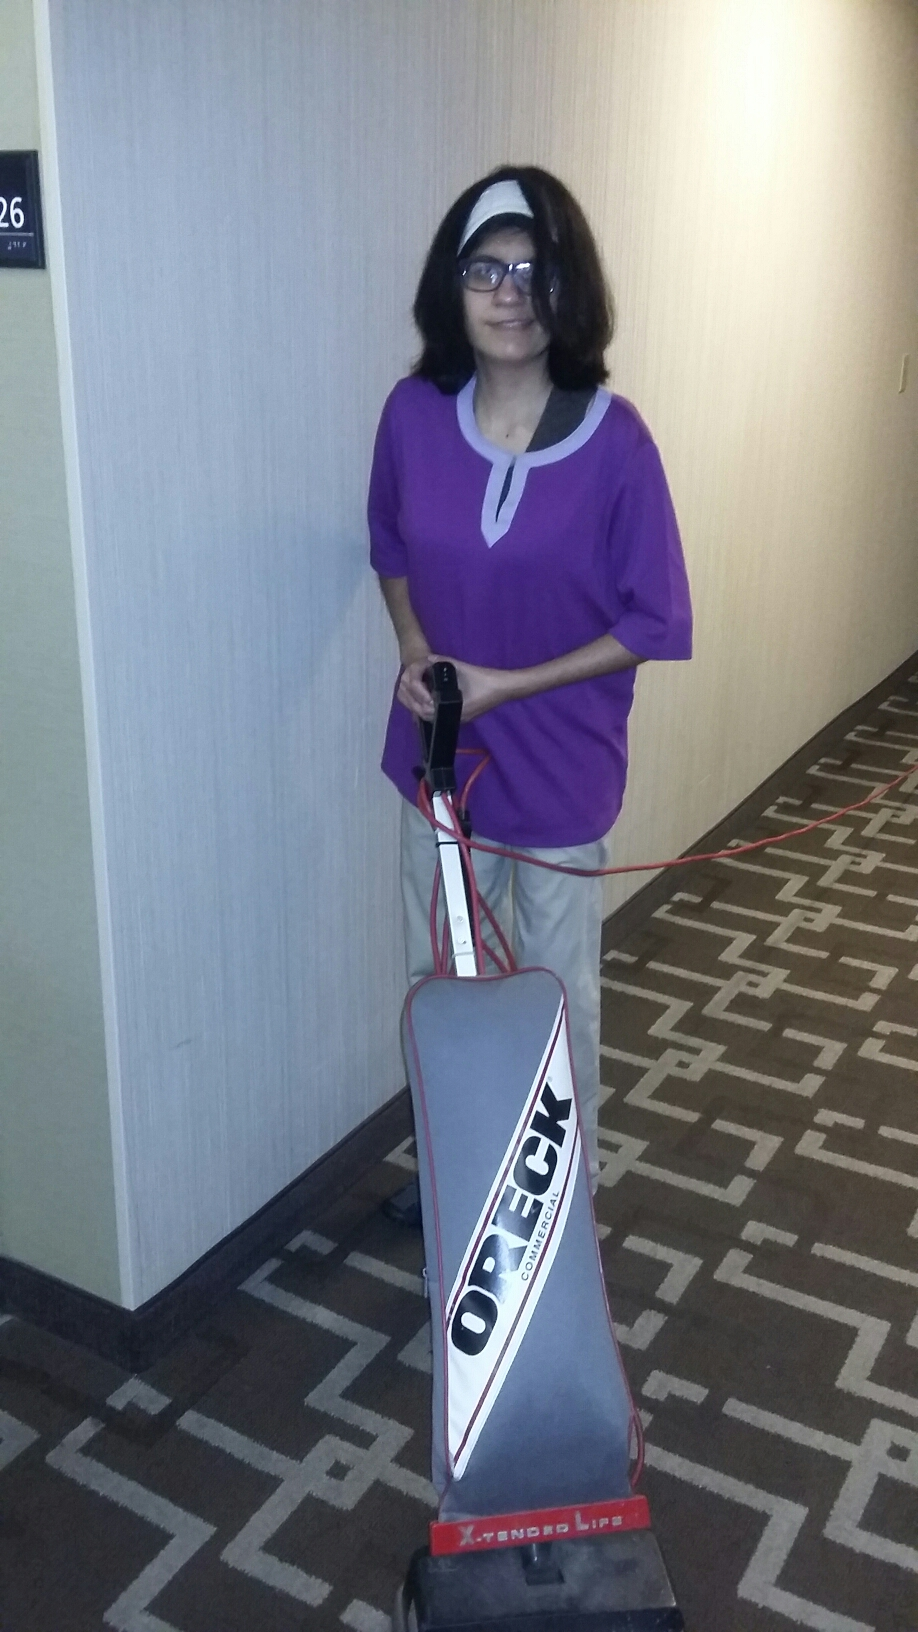 woman standing with vacuum cleaner